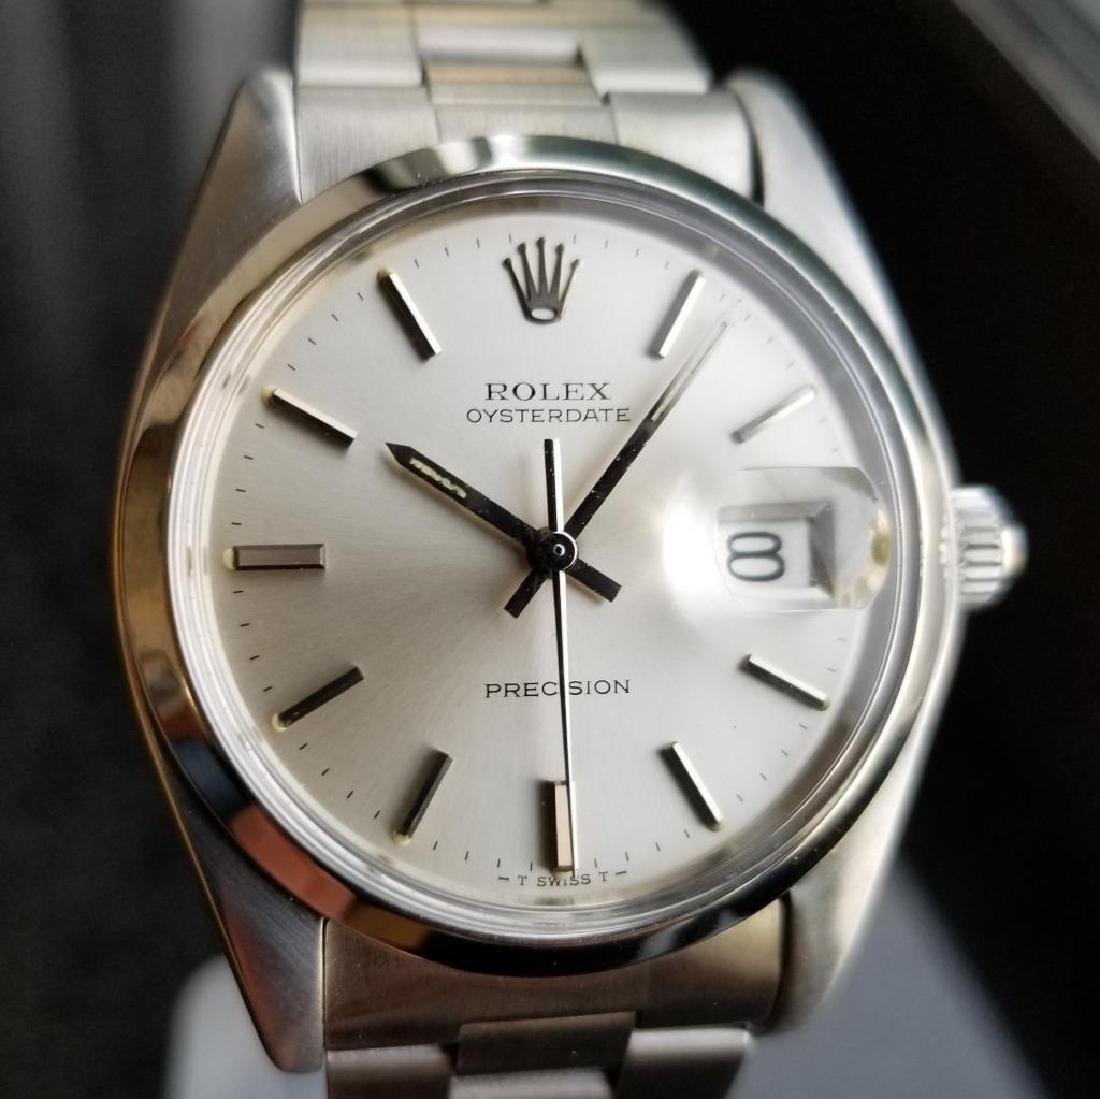 Vintage 1980 Rolex 6694 Oysterdate Precision Manual